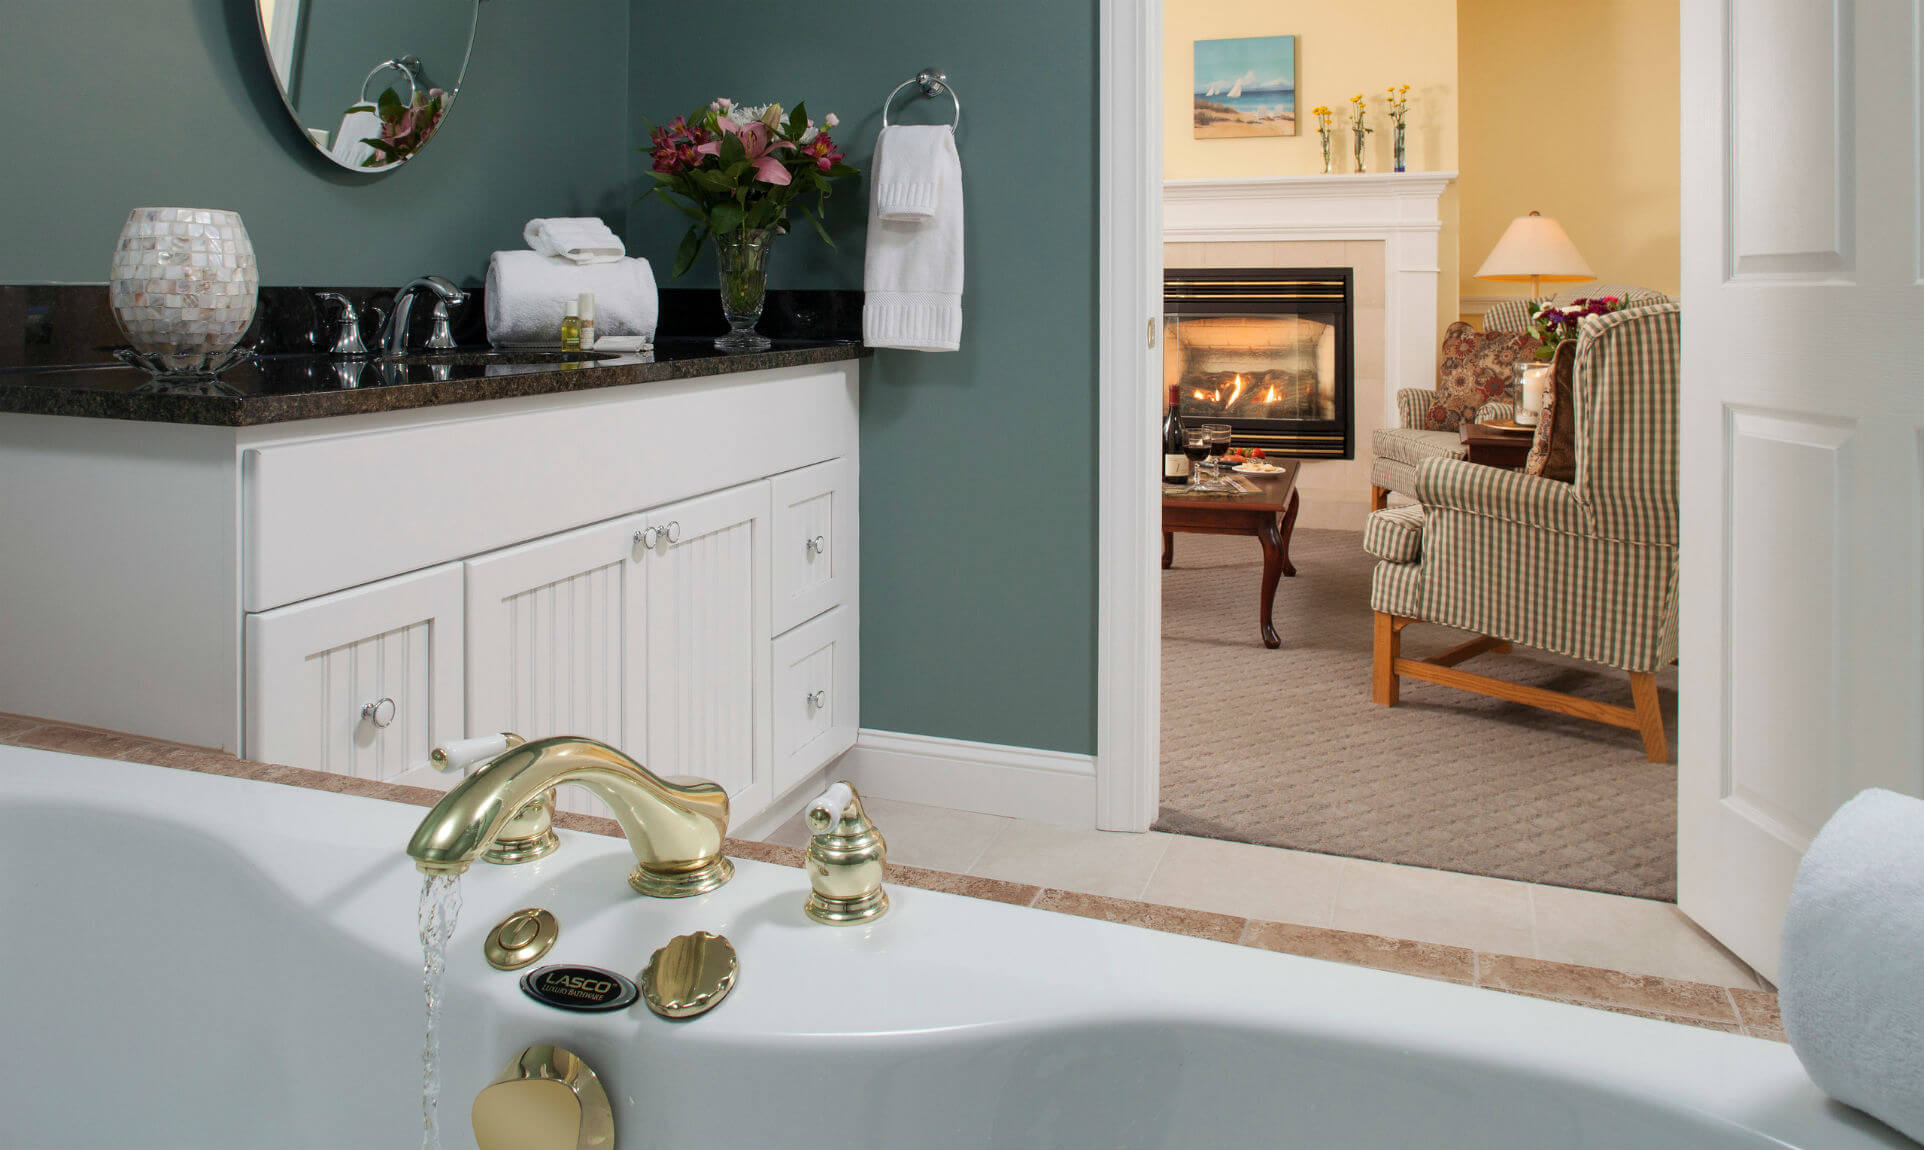 Shot from above bathtub showing showing bathroom counter and sitting area with fireplace through doorway